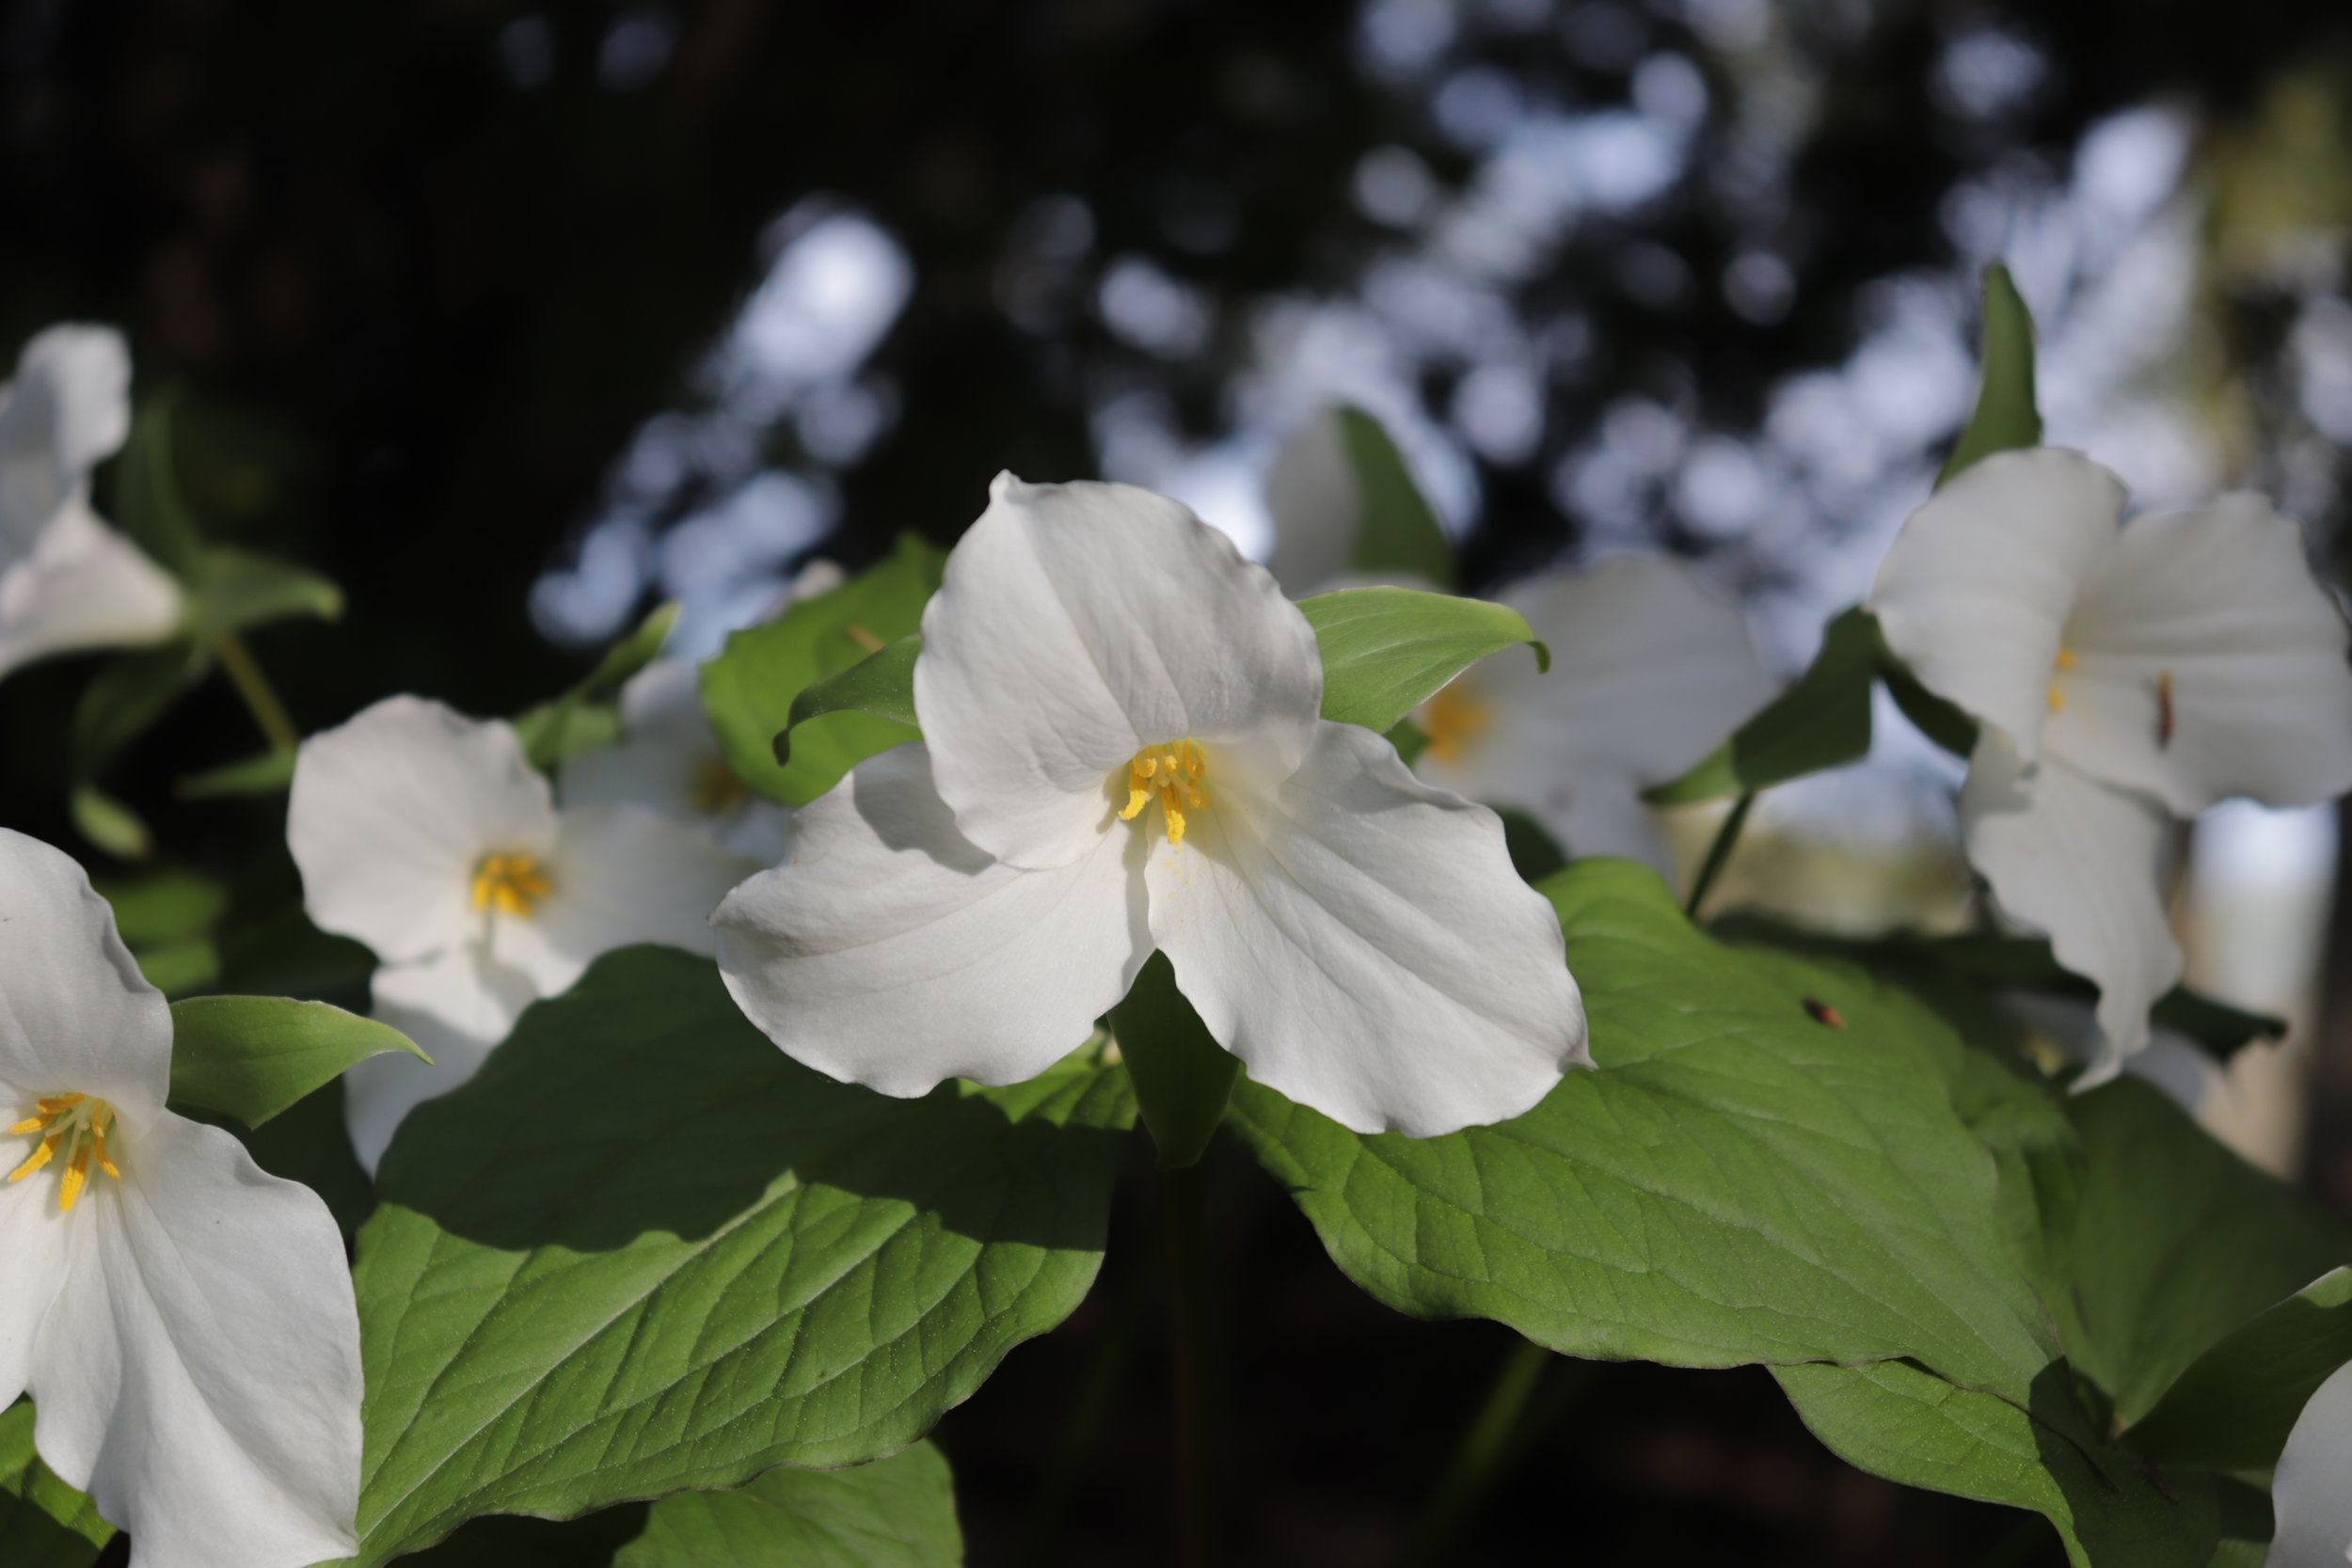 Trilliums do very well in a garden setting